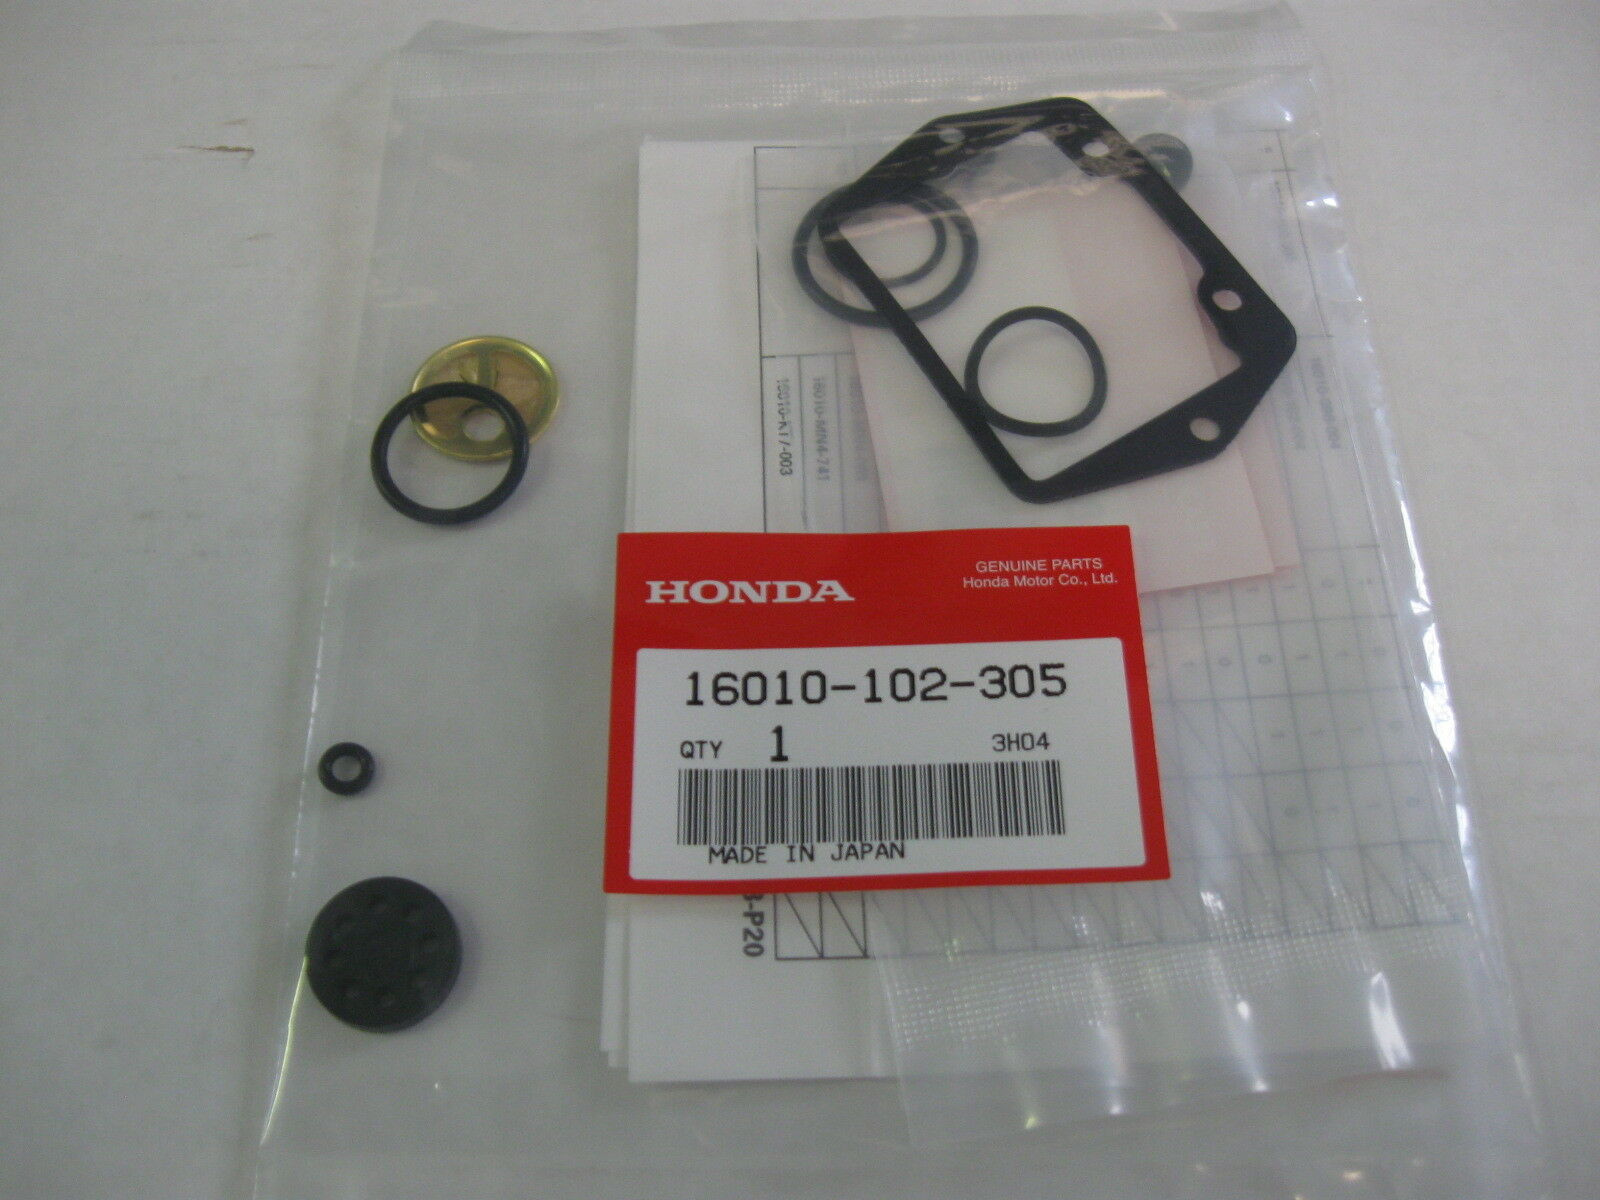 Honda Ct70 Ct70h Carburetor Kit Carb Rebuild Ct90 St90 Atc70 Atc90 1970 Oem 1 Of 3only 4 Available